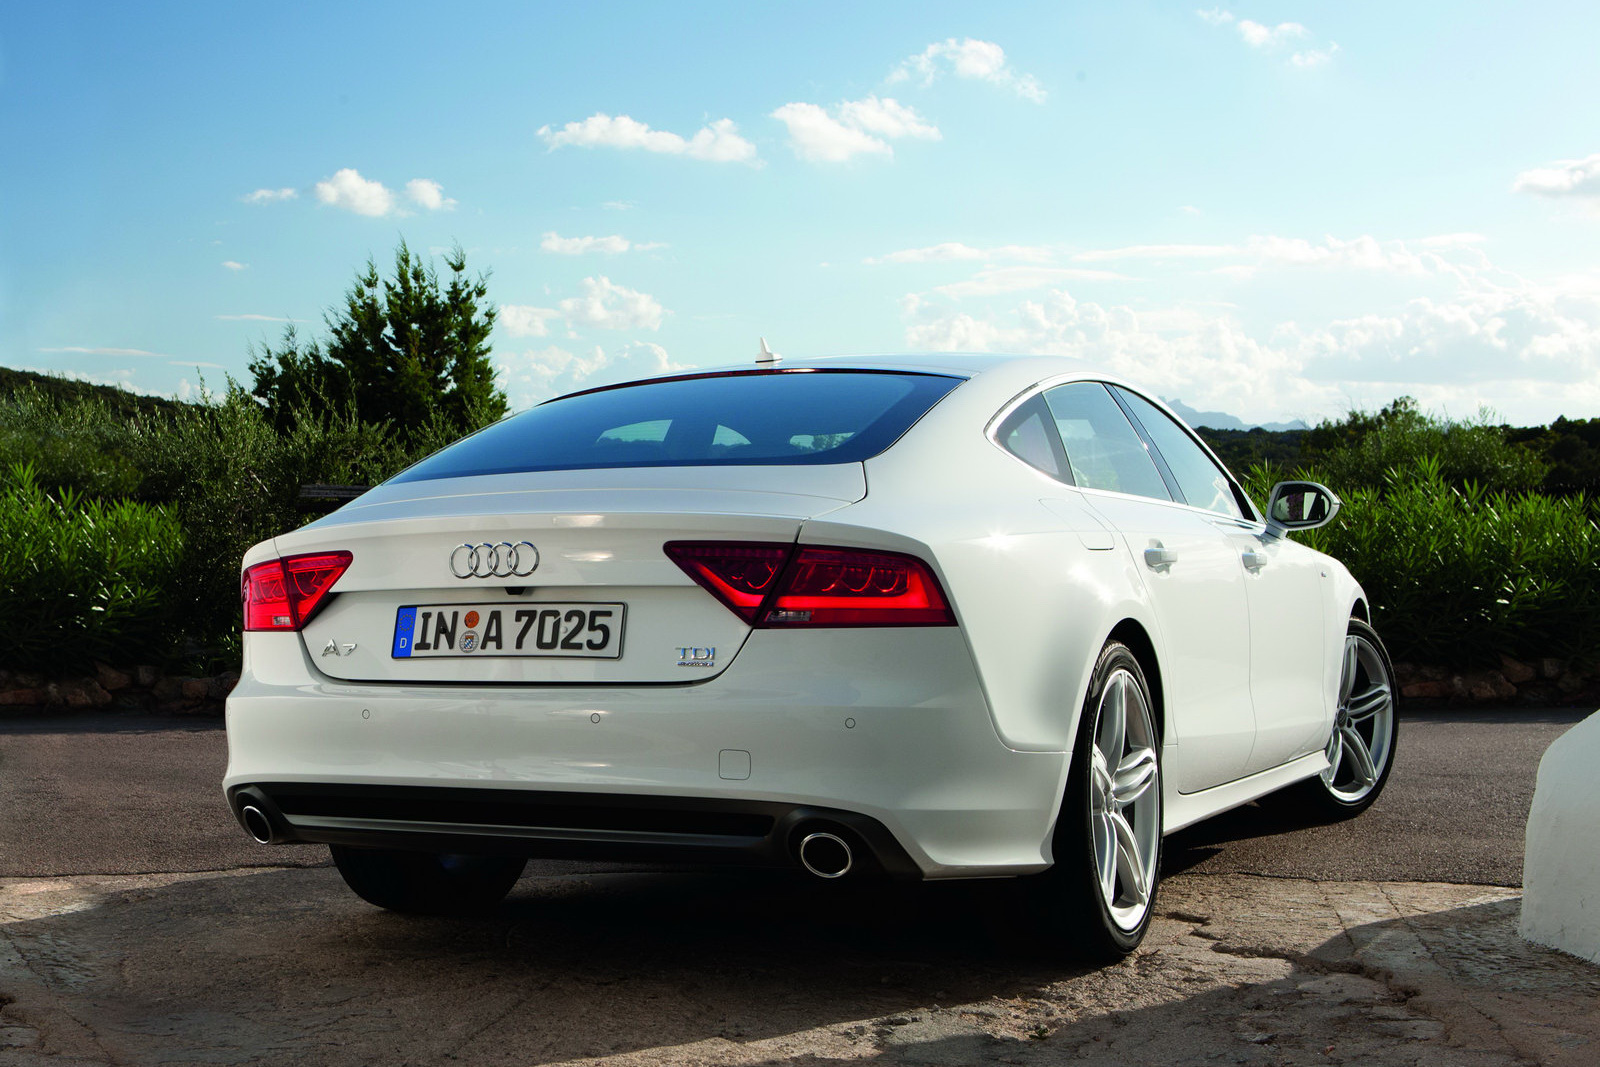 The Exciting 2012 Audi A7 Sportback Machinespider Com